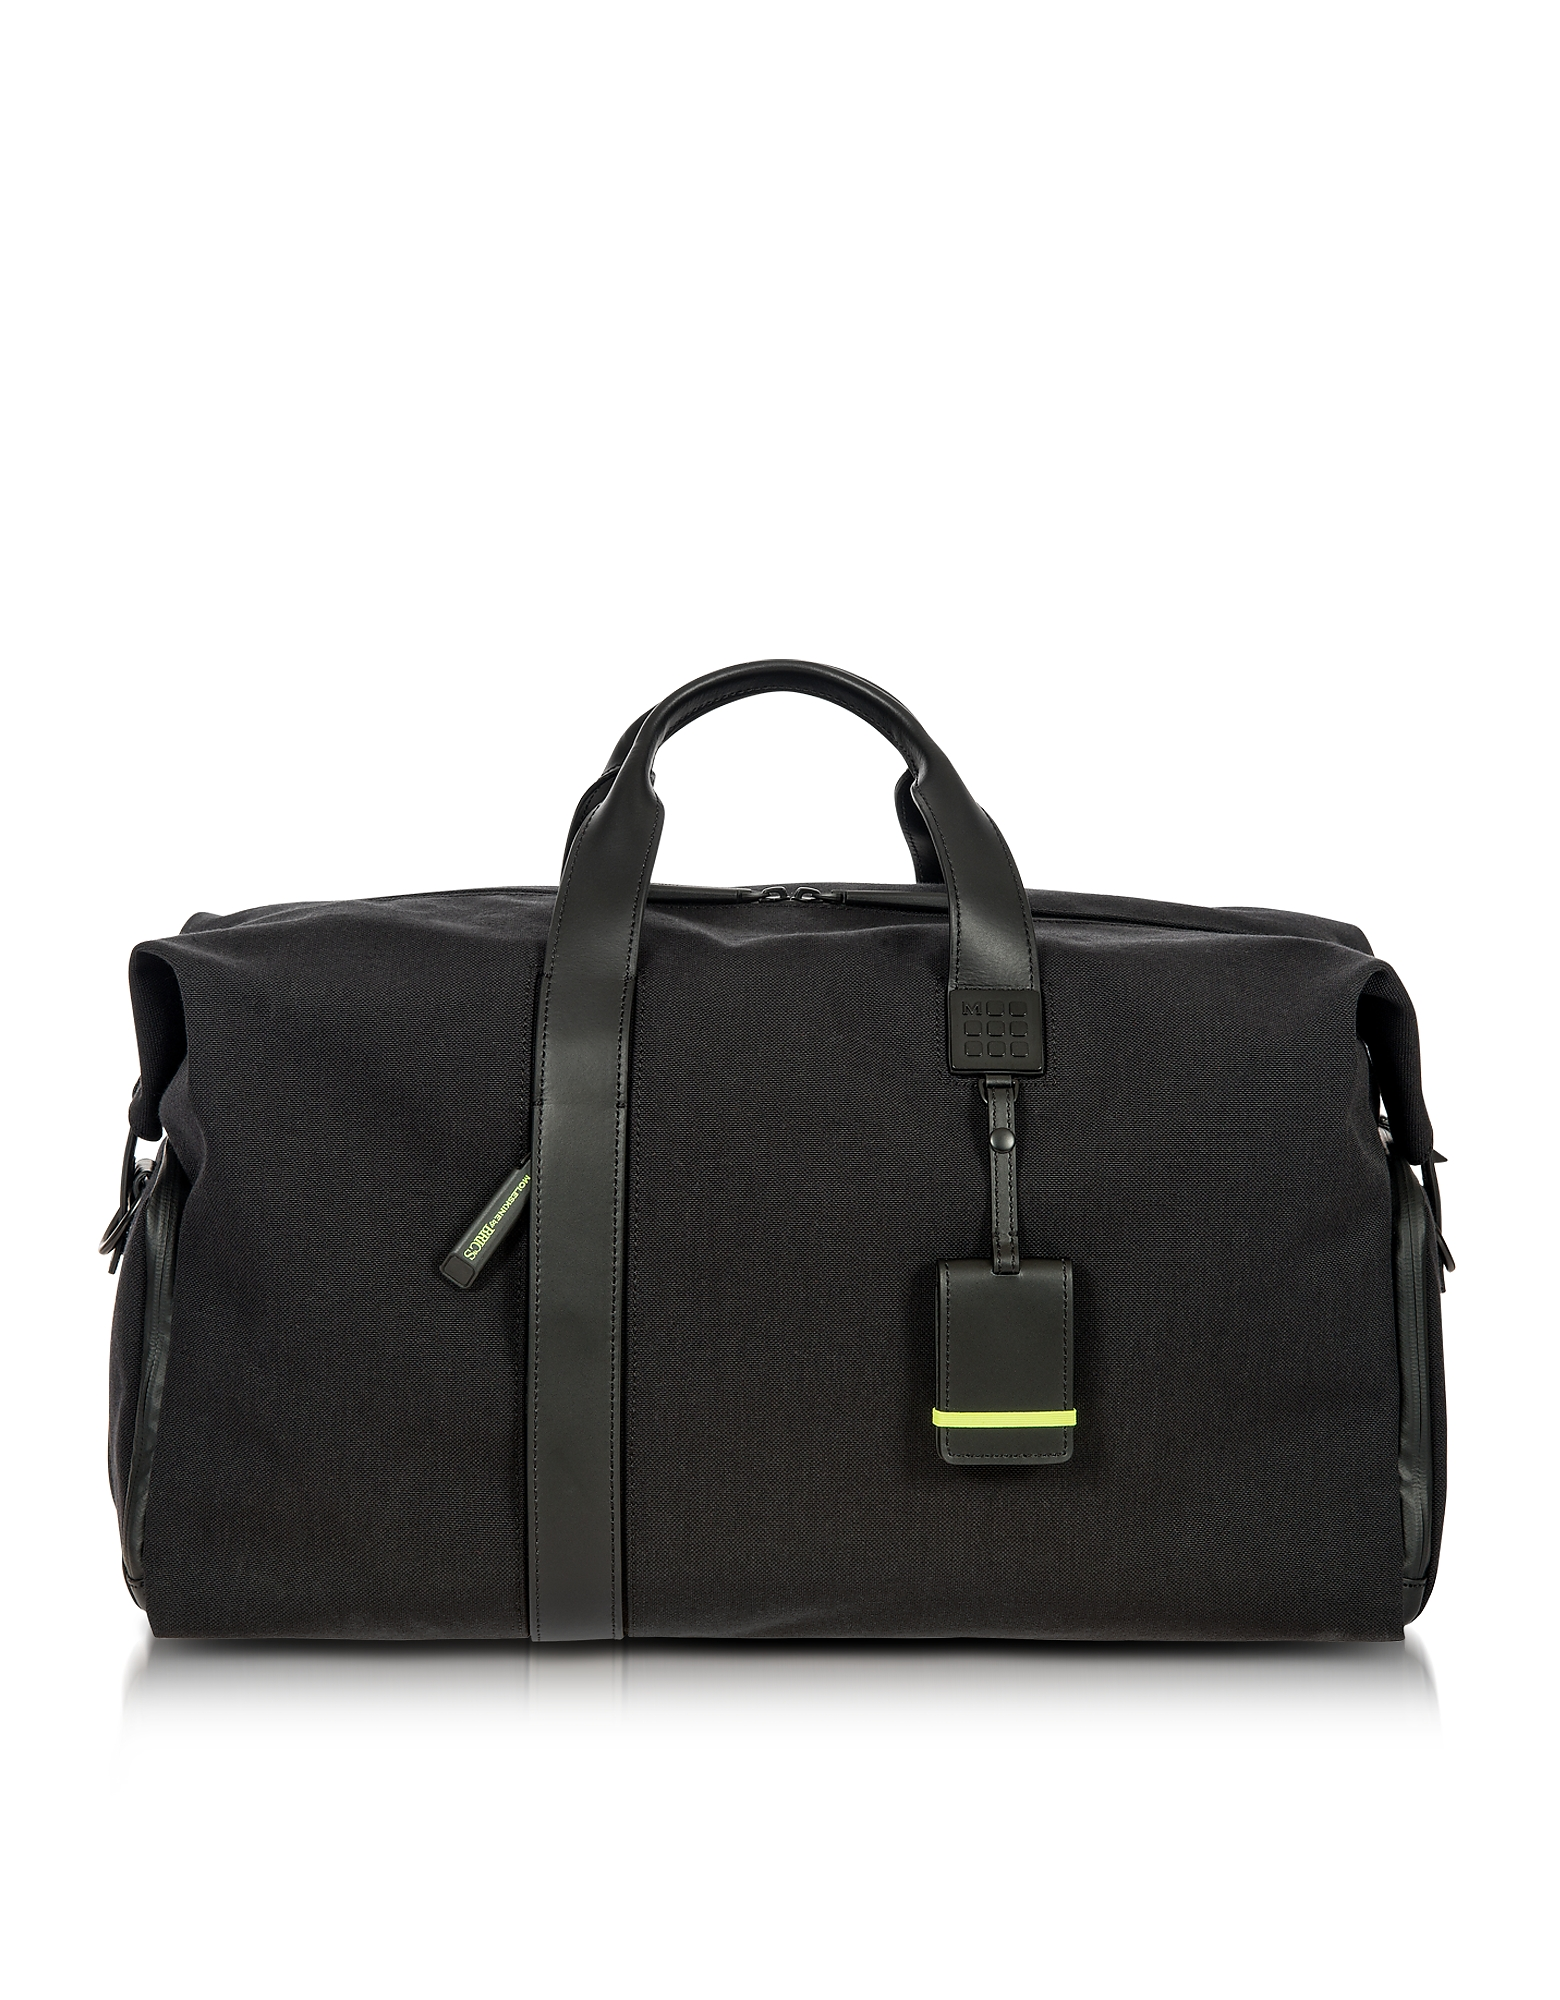 Bric's Travel Bags, Black Nylon and Leather Weekender Holdall